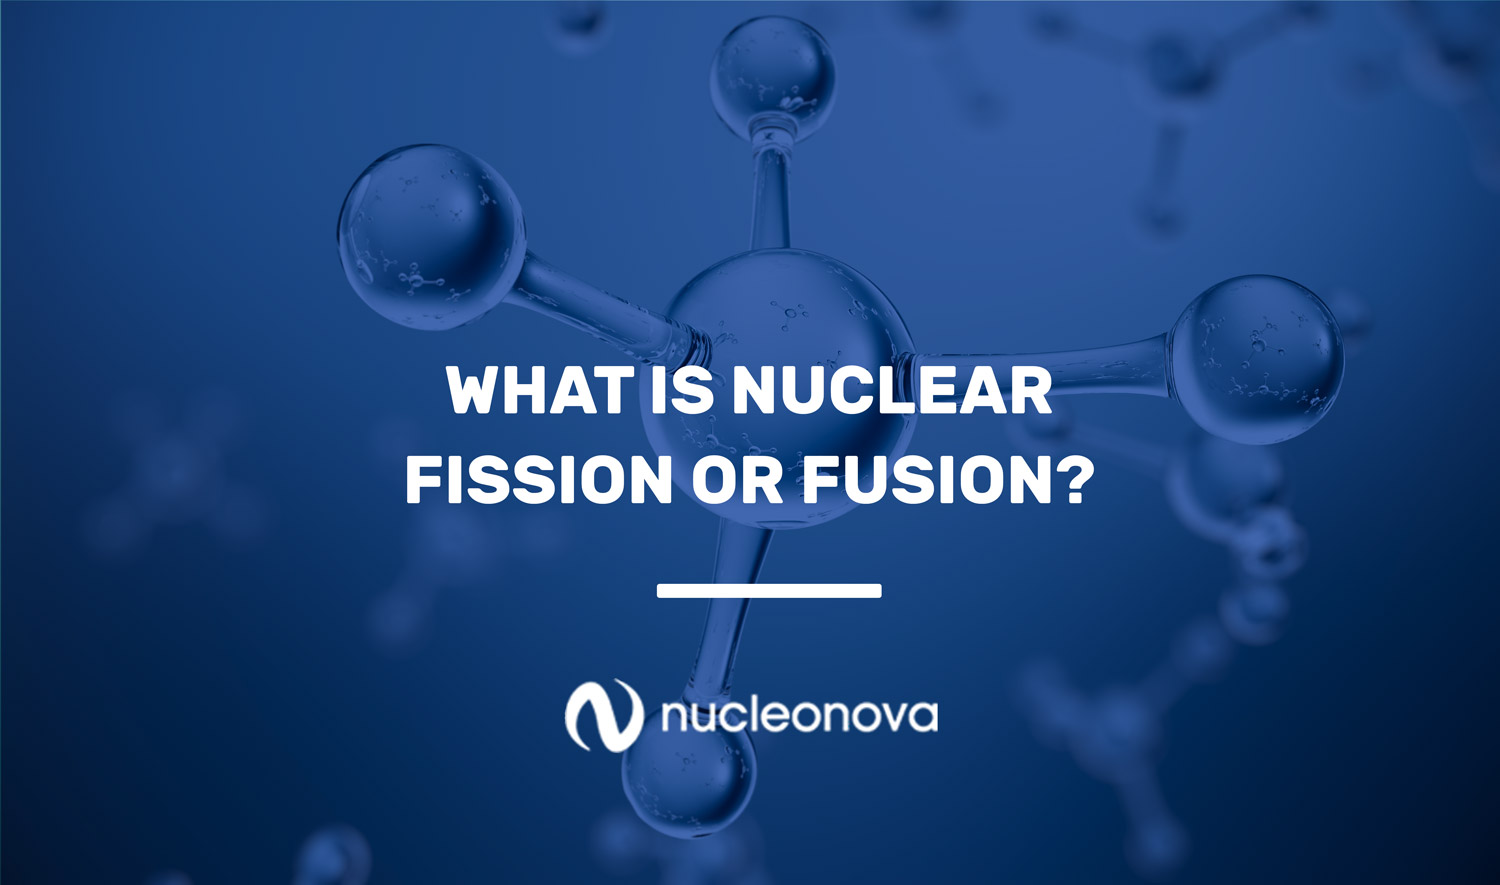 what is nuclear fission or fusion?